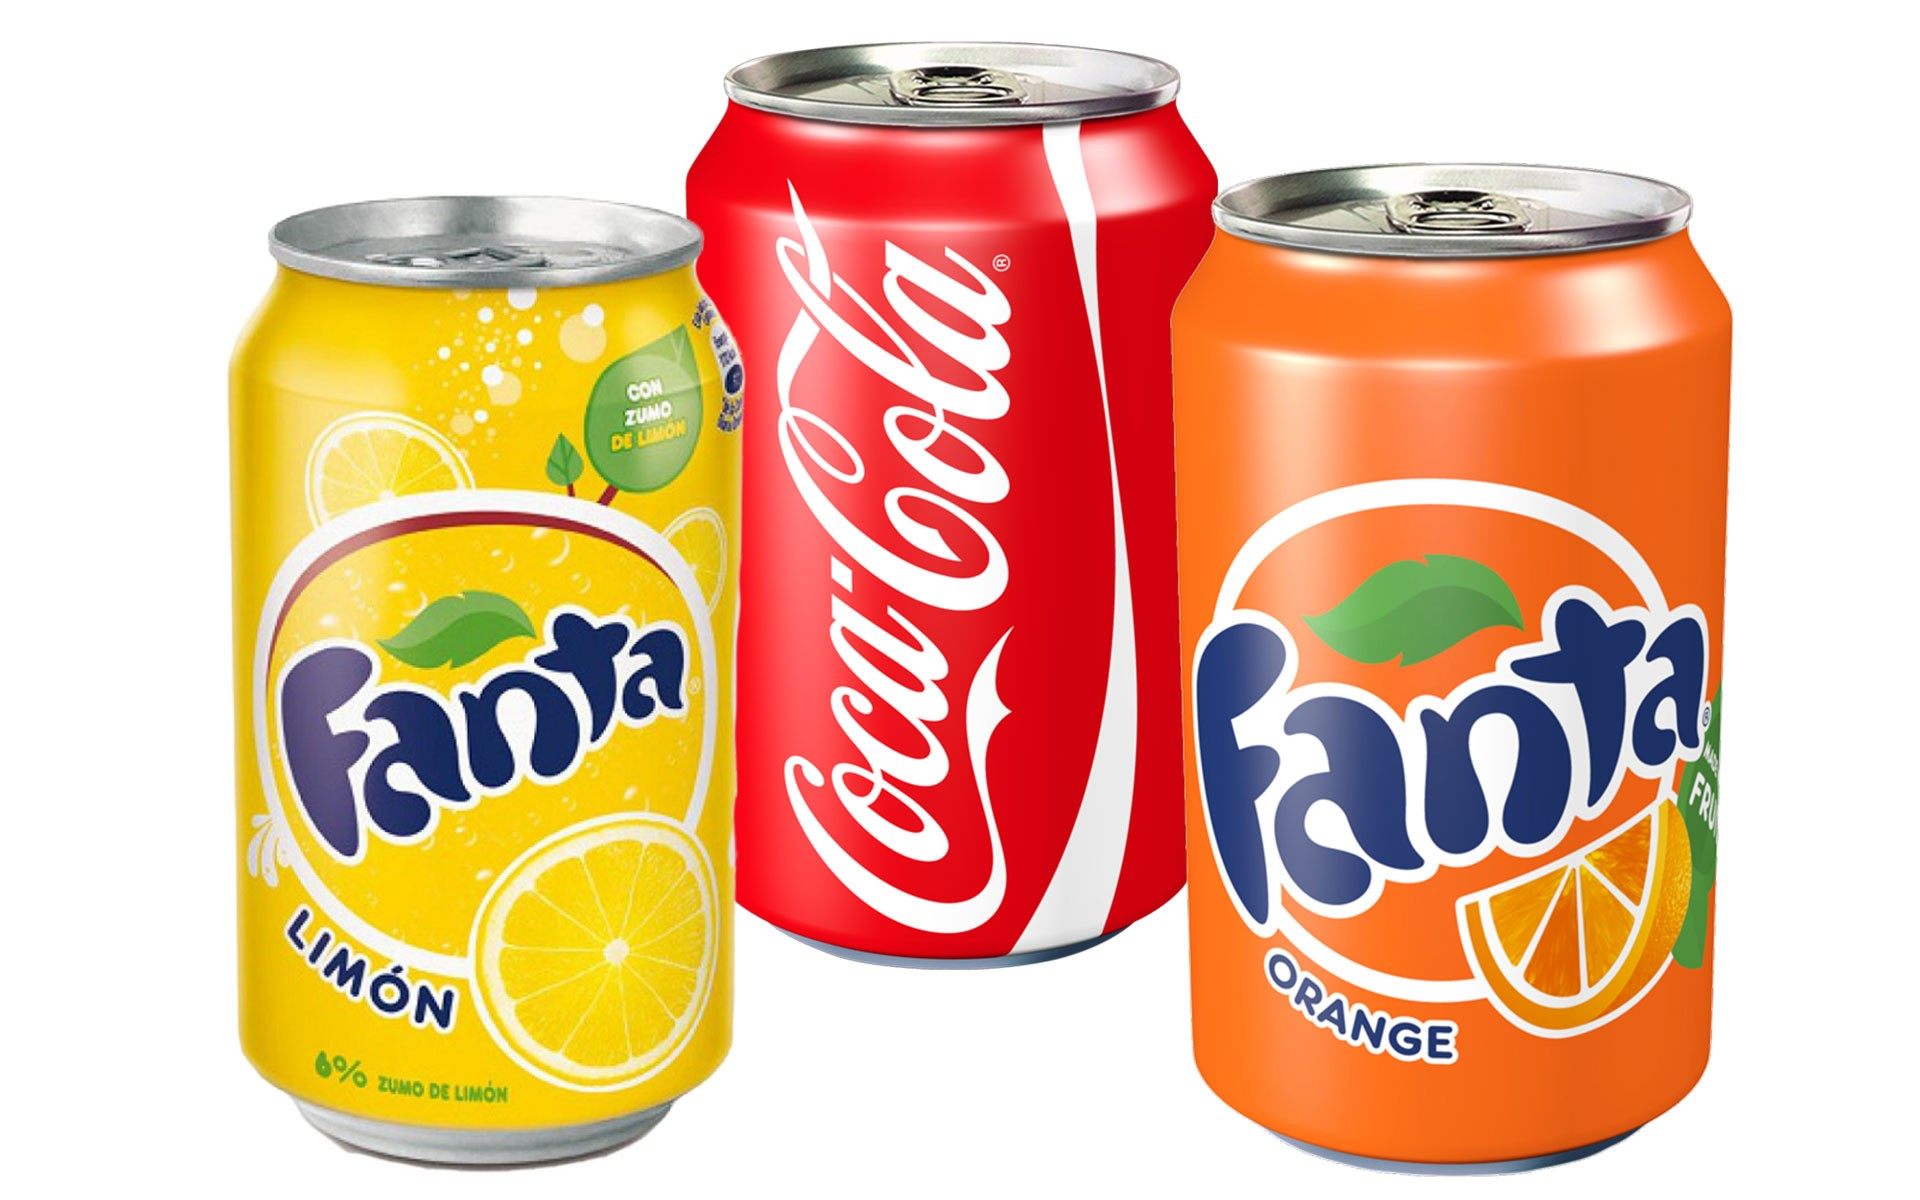 Coca Ccola - Fanta Limon - Fanta Orange